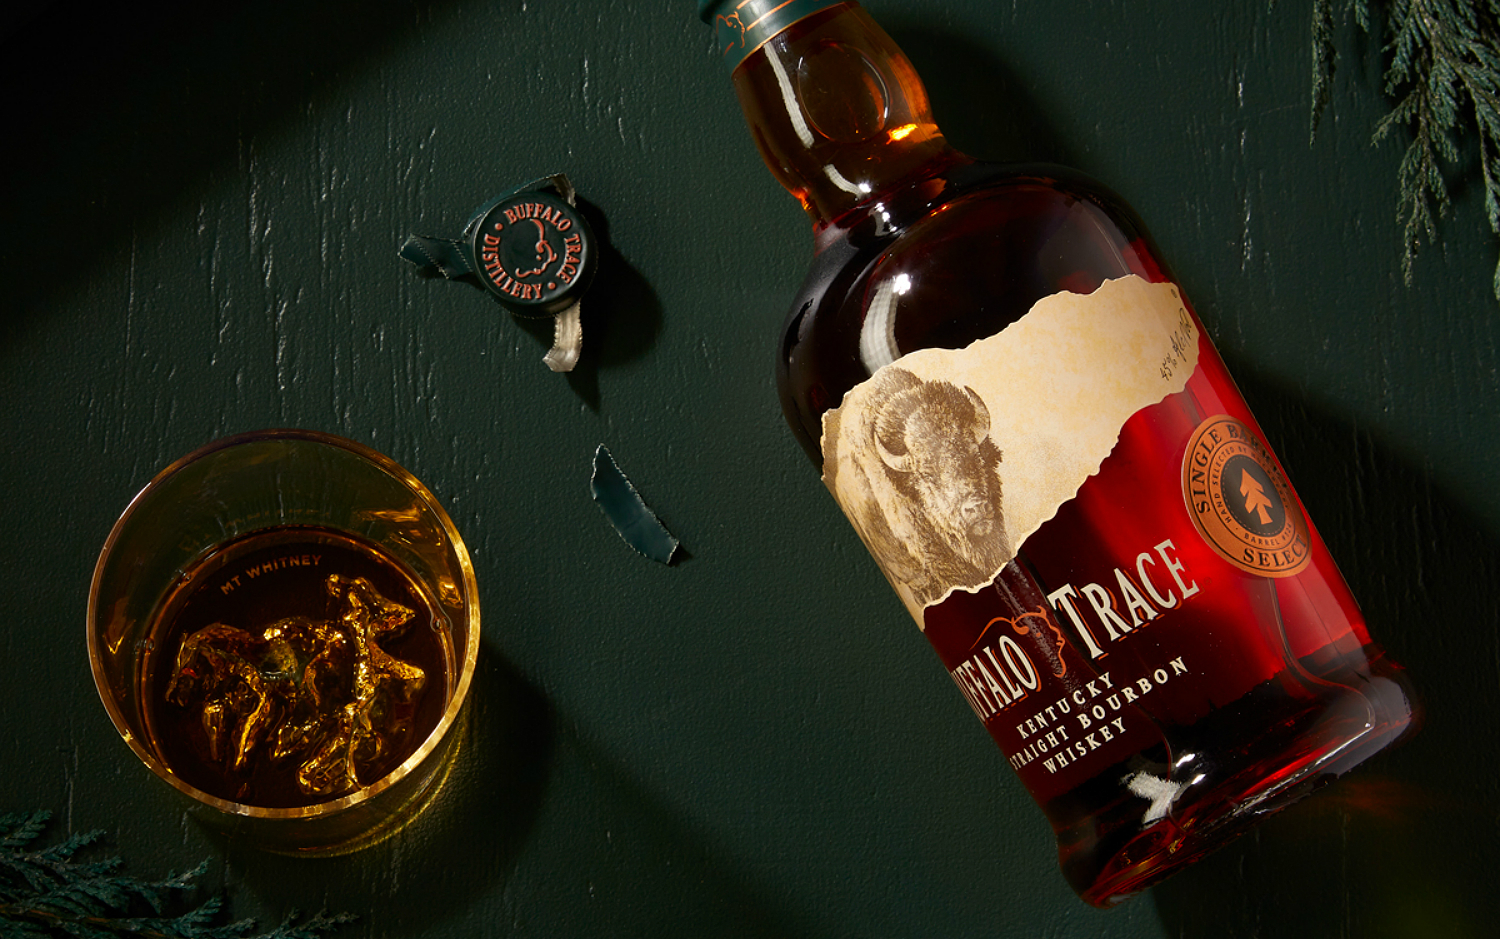 Huckberry x Buffalo Trace